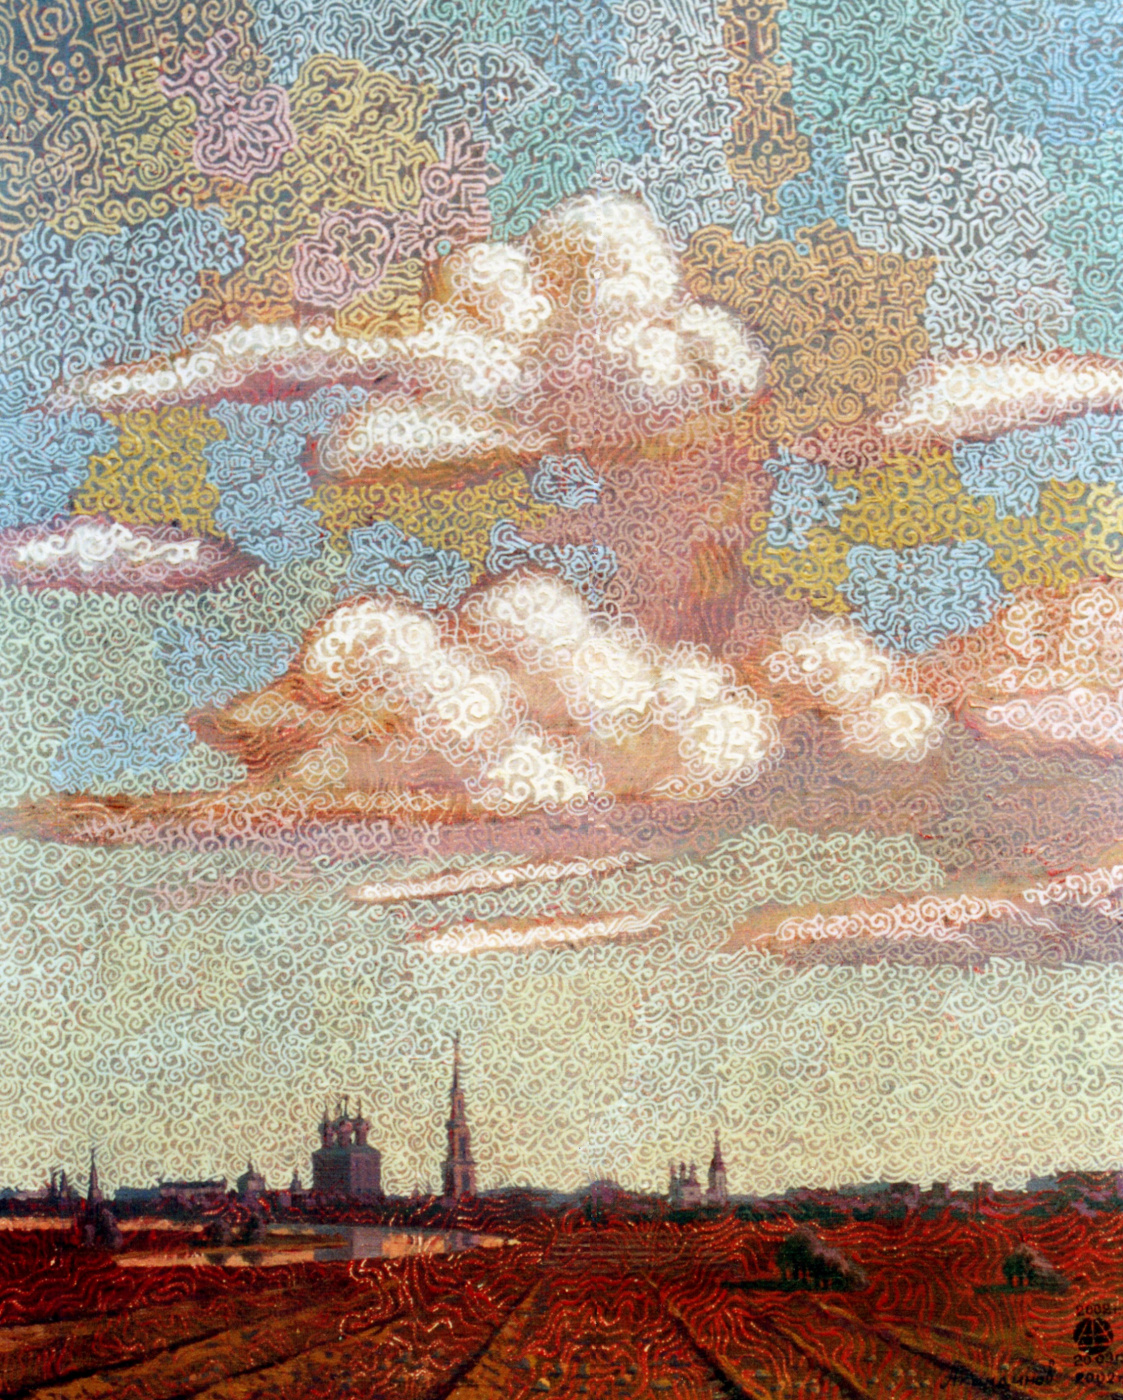 Алексей Петрович Акиндинов. Sky over Ryazan